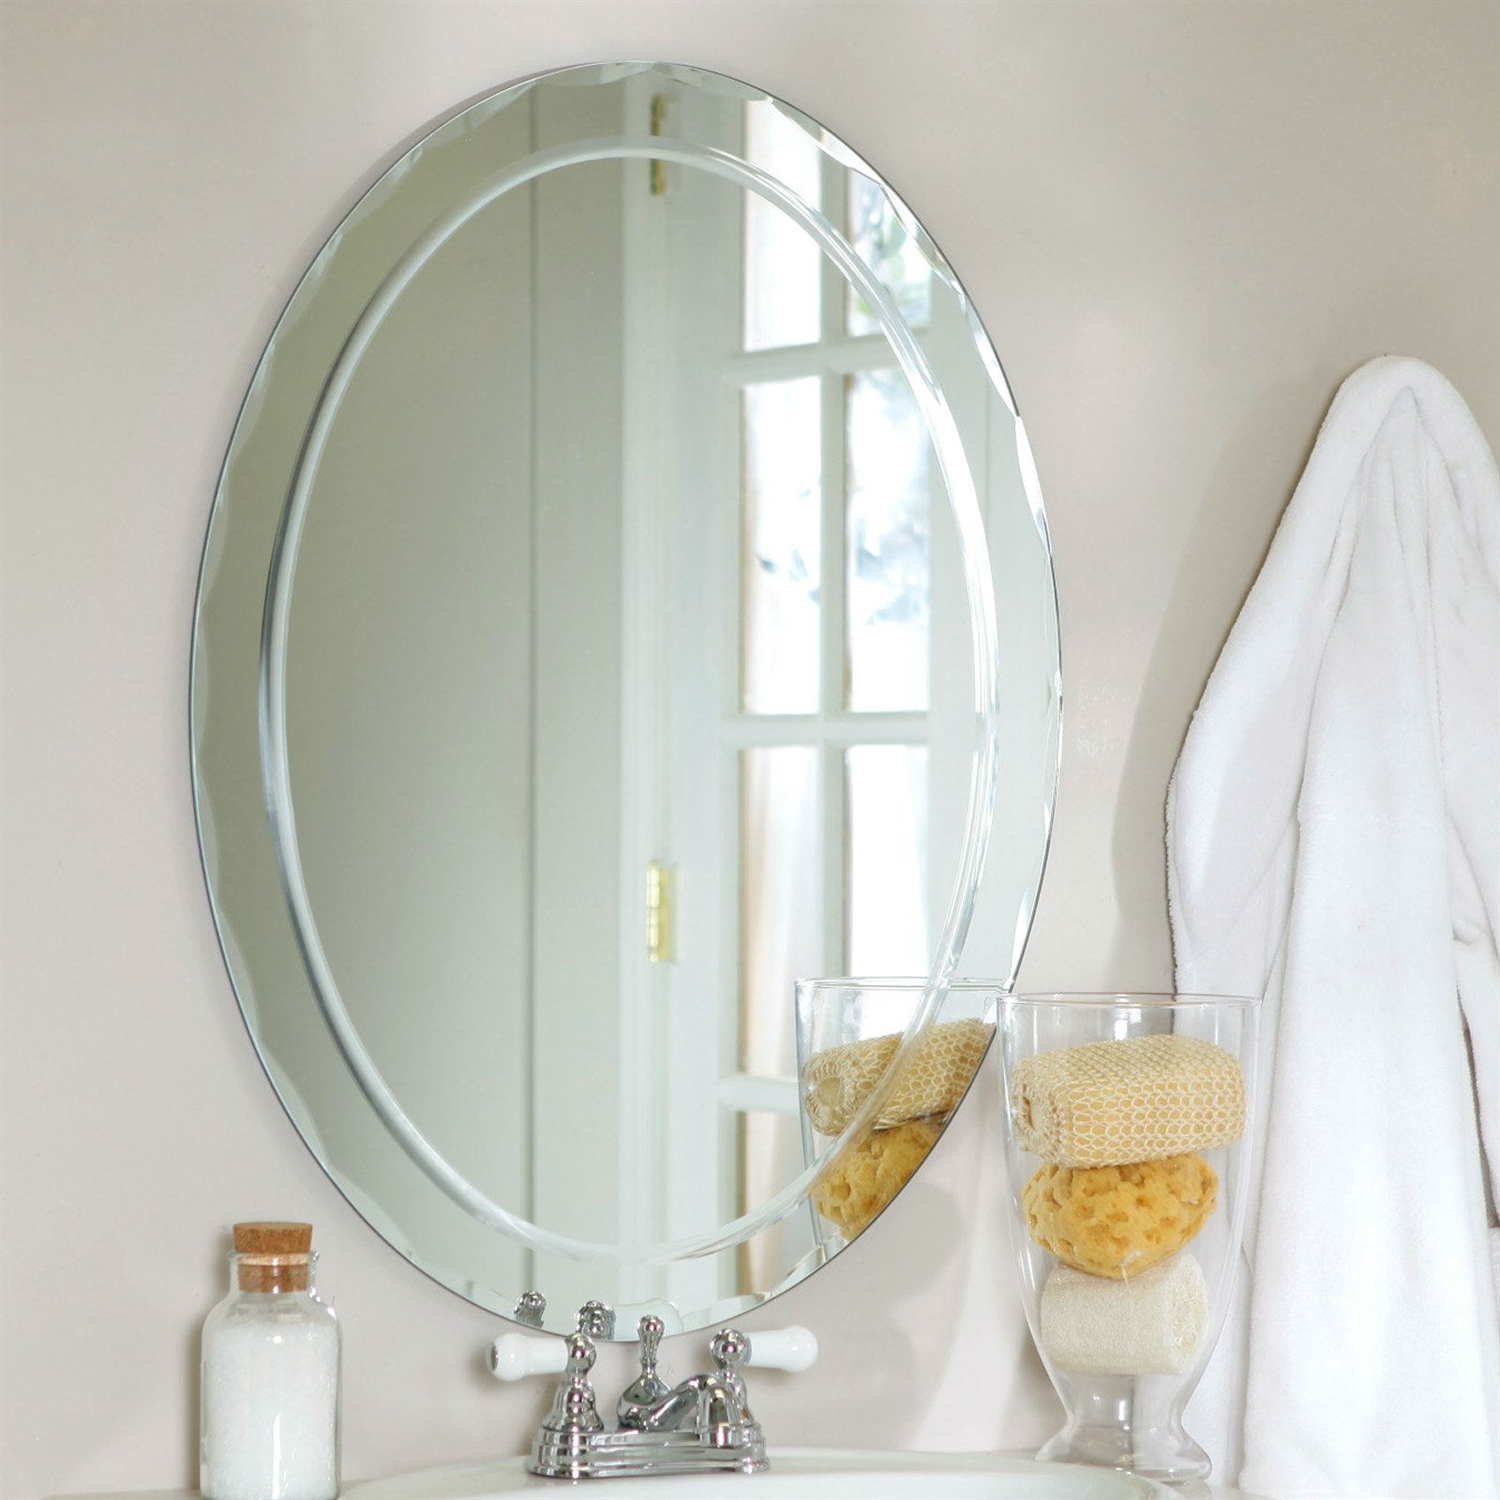 Oval Frame Less Bathroom Vanity Wall Mirror With Beveled Edge Scallop Border